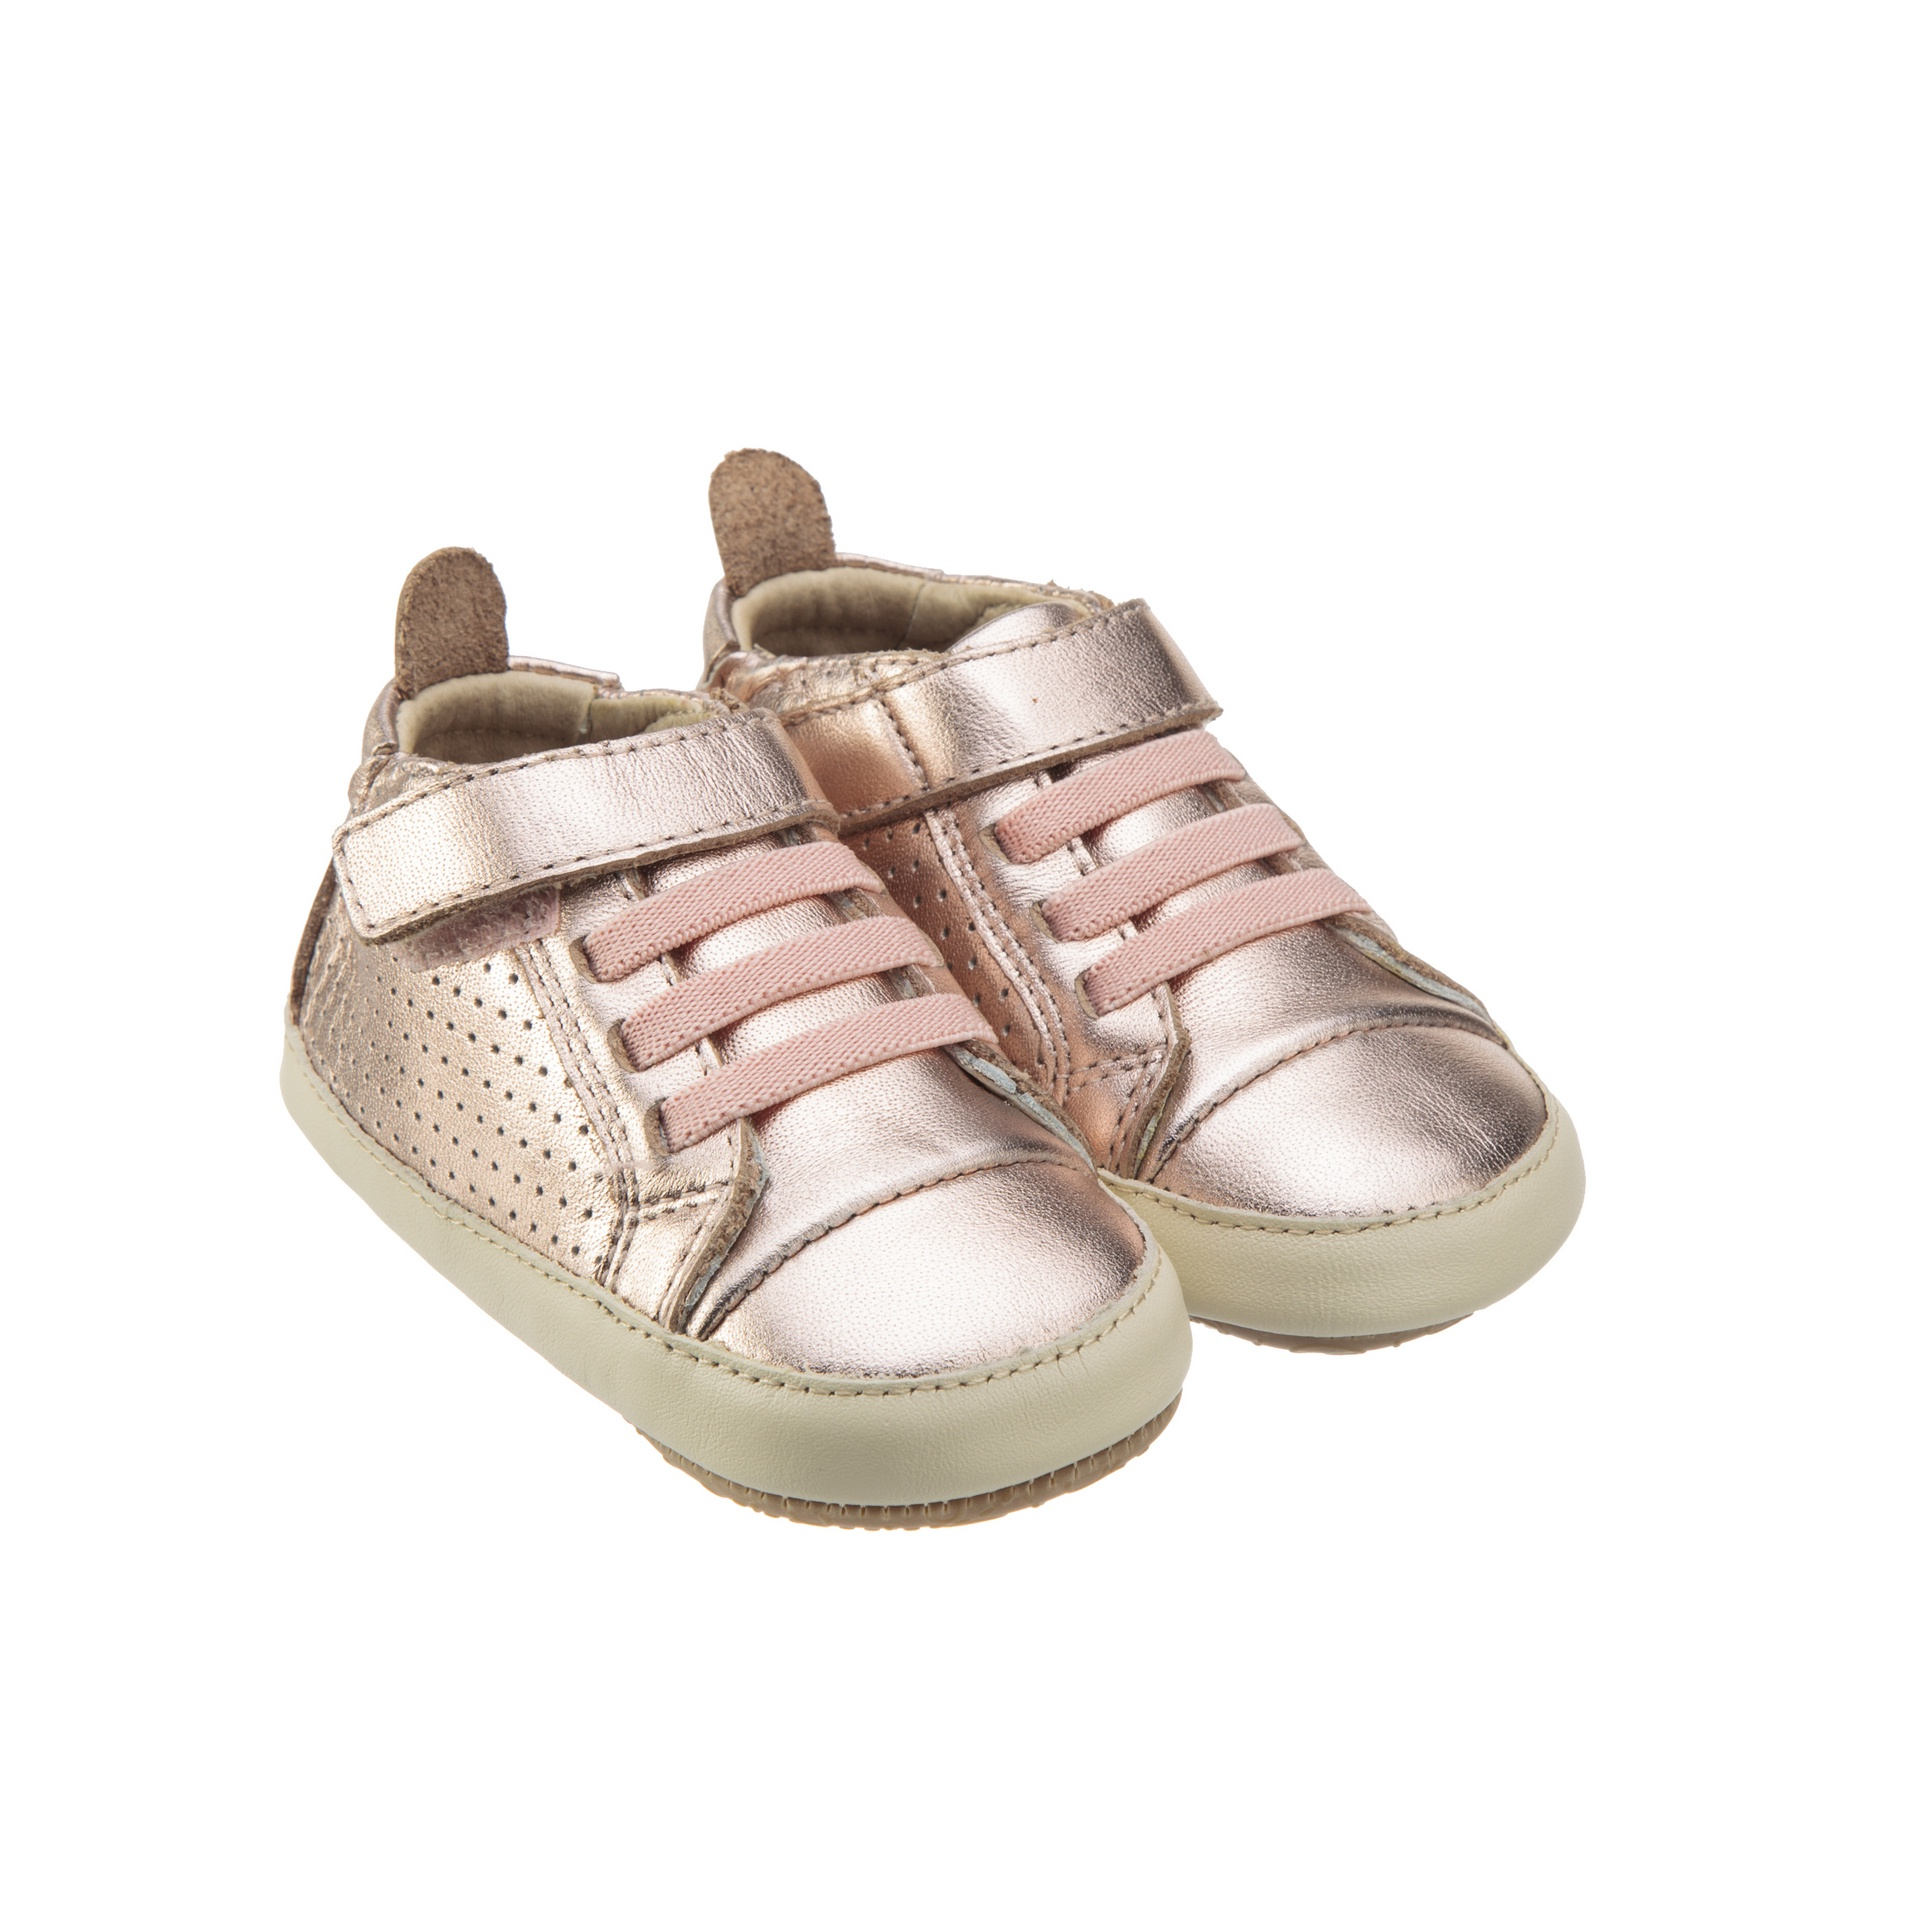 Old Soles Cheer Bambini Copper Champagne Rubber Sole